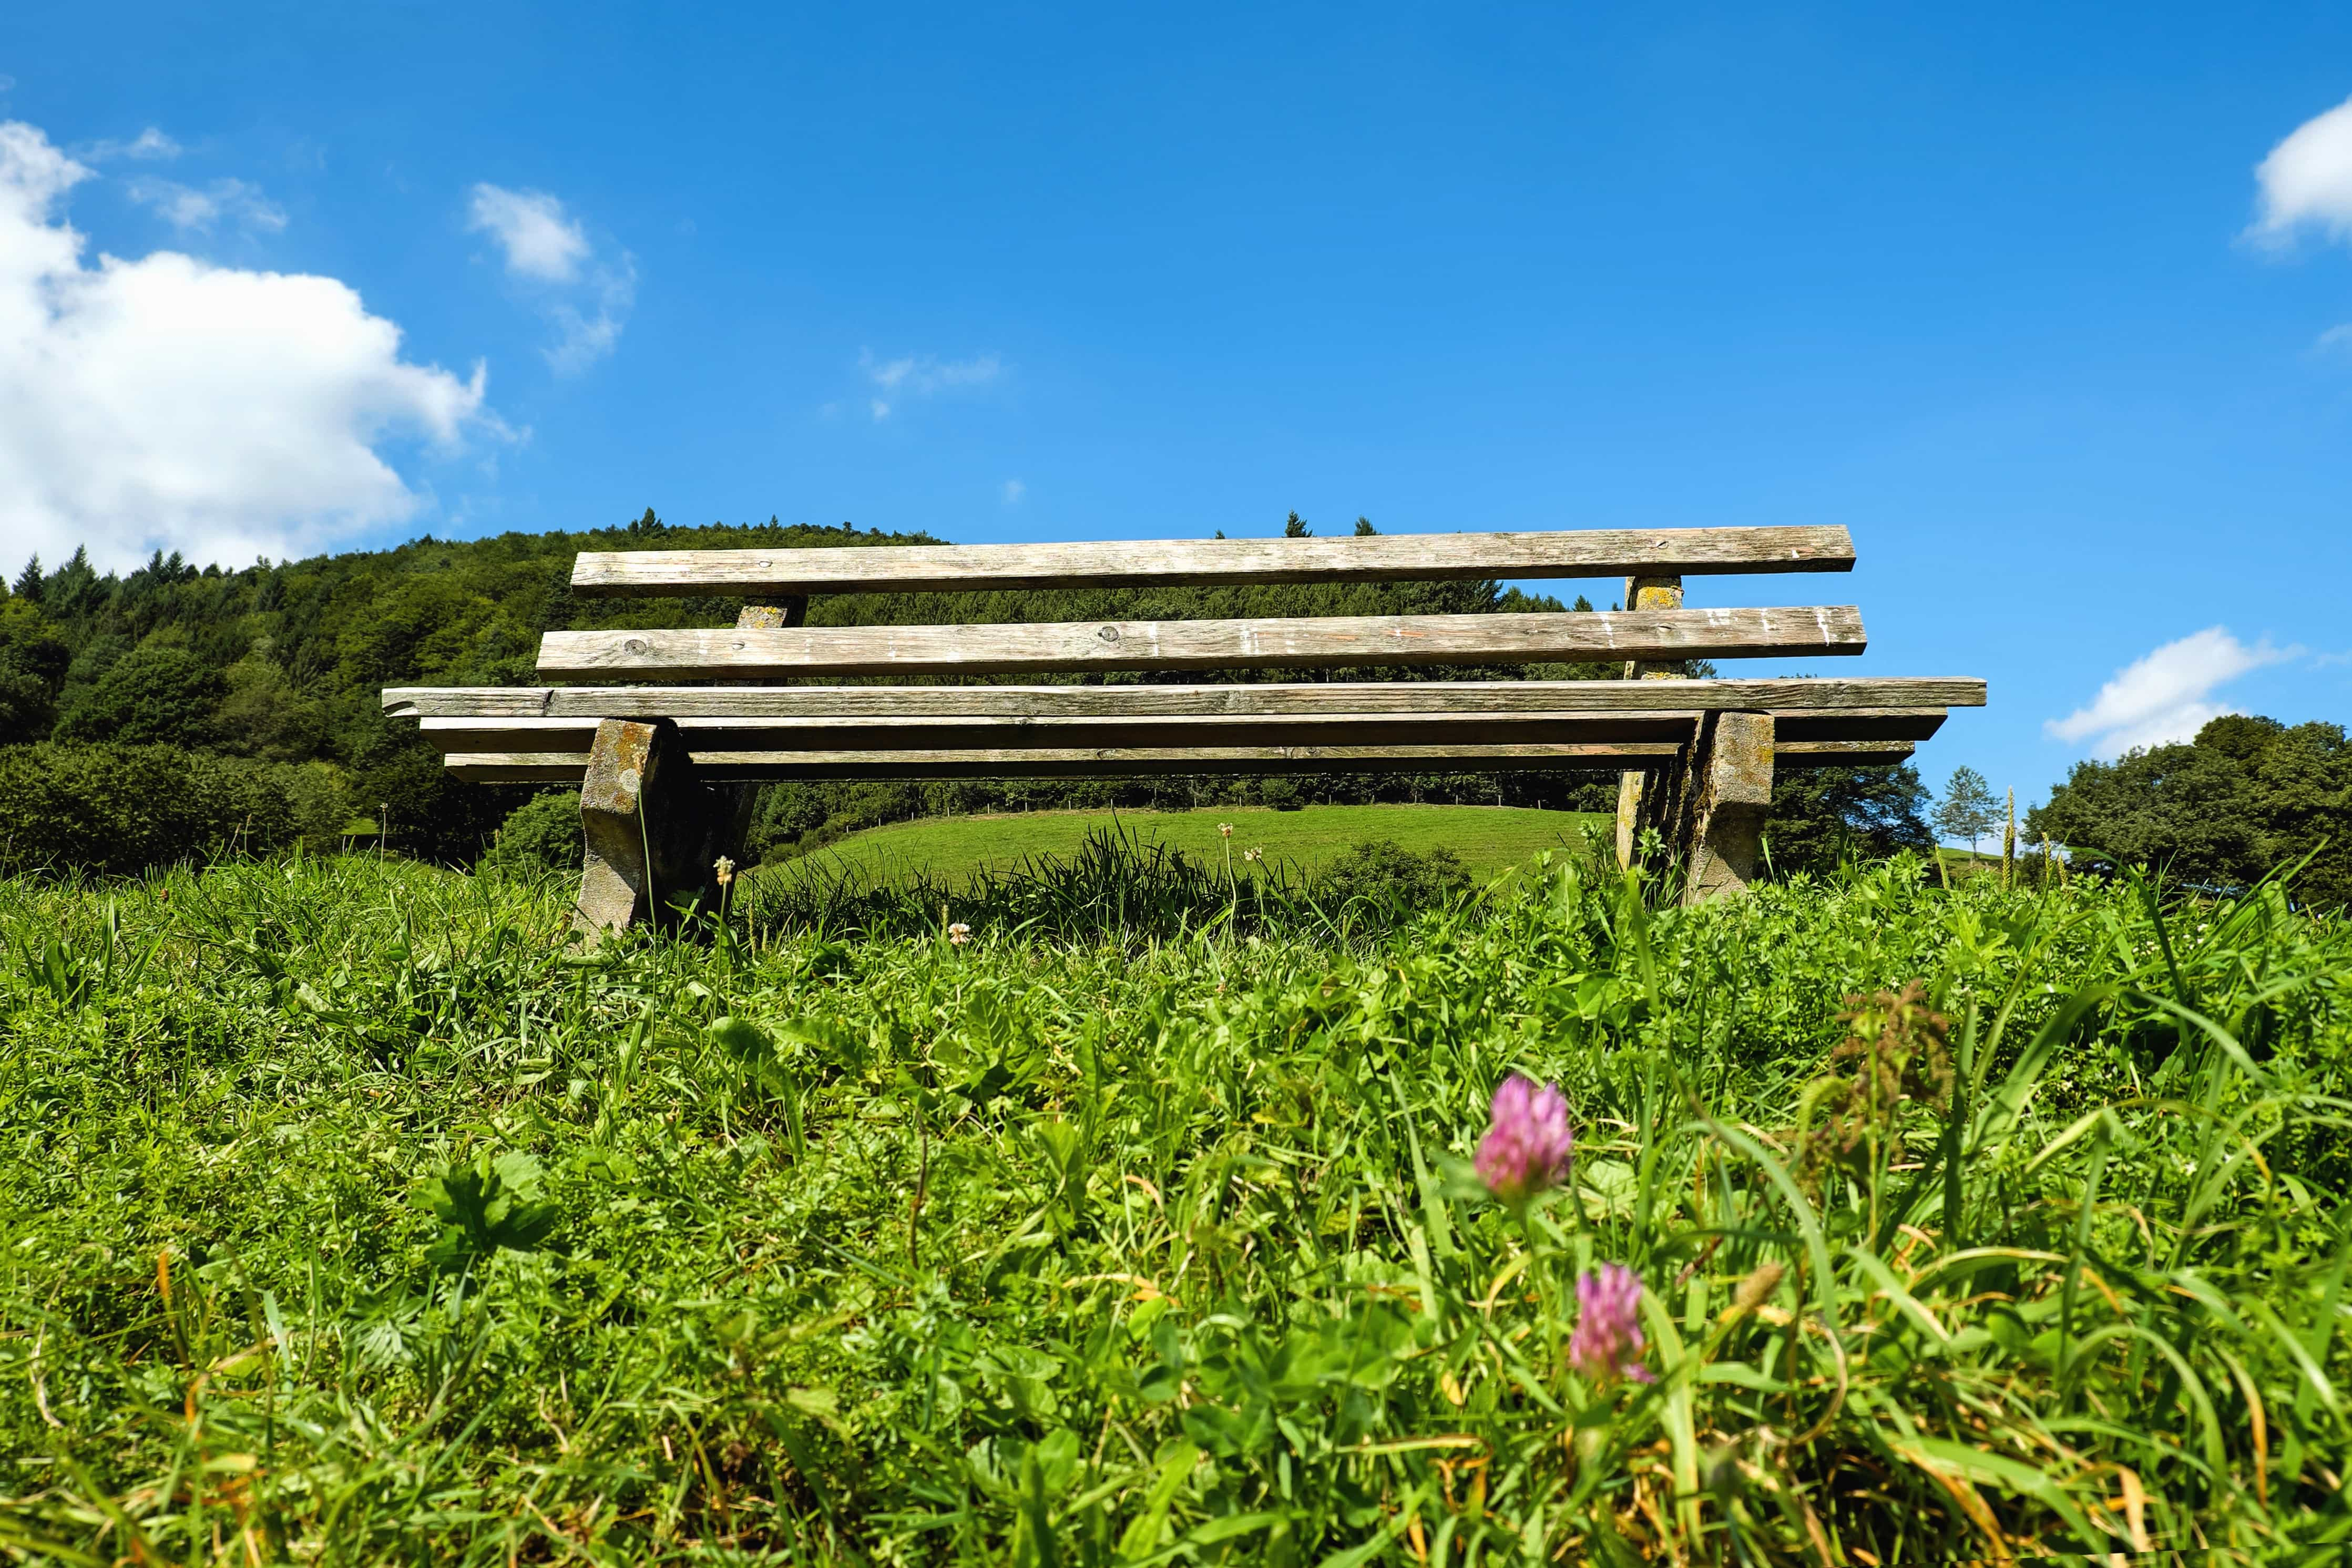 free picture  grass  meadow  bench  field  nature  landscape  outdoor